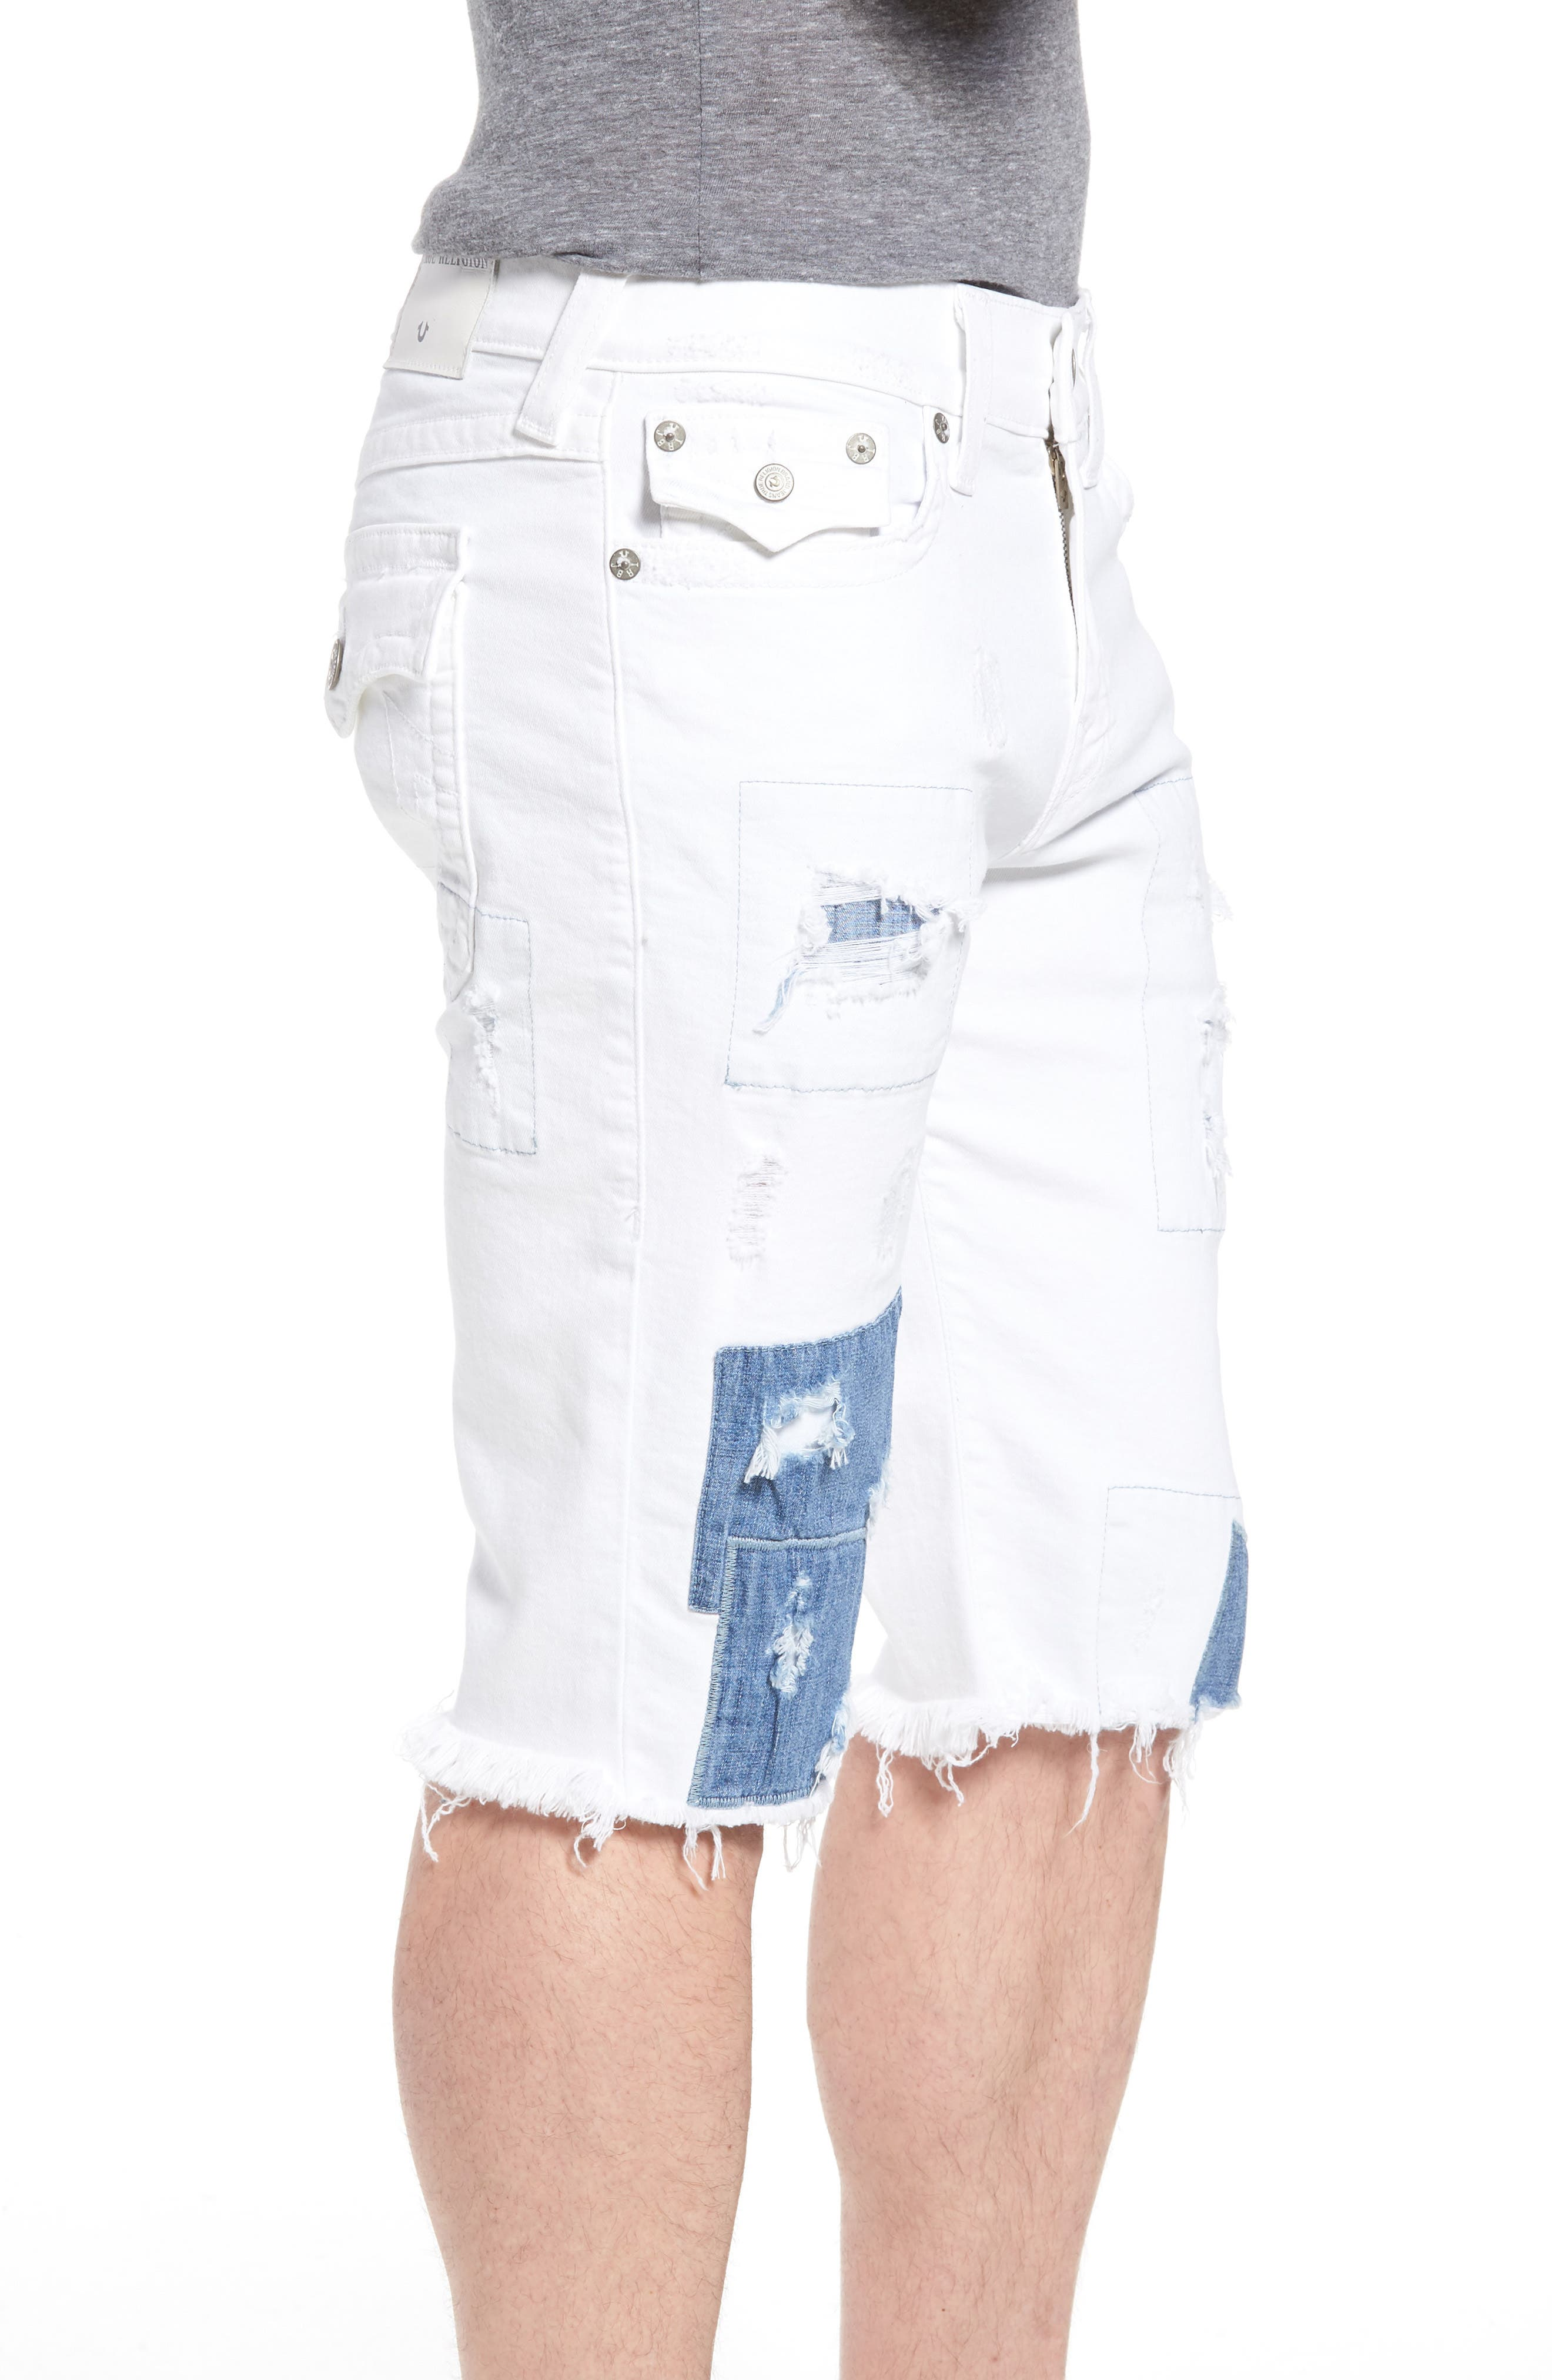 Ricky Relaxed Fit Denim Shorts,                             Alternate thumbnail 3, color,                             Eqxl Street Cred